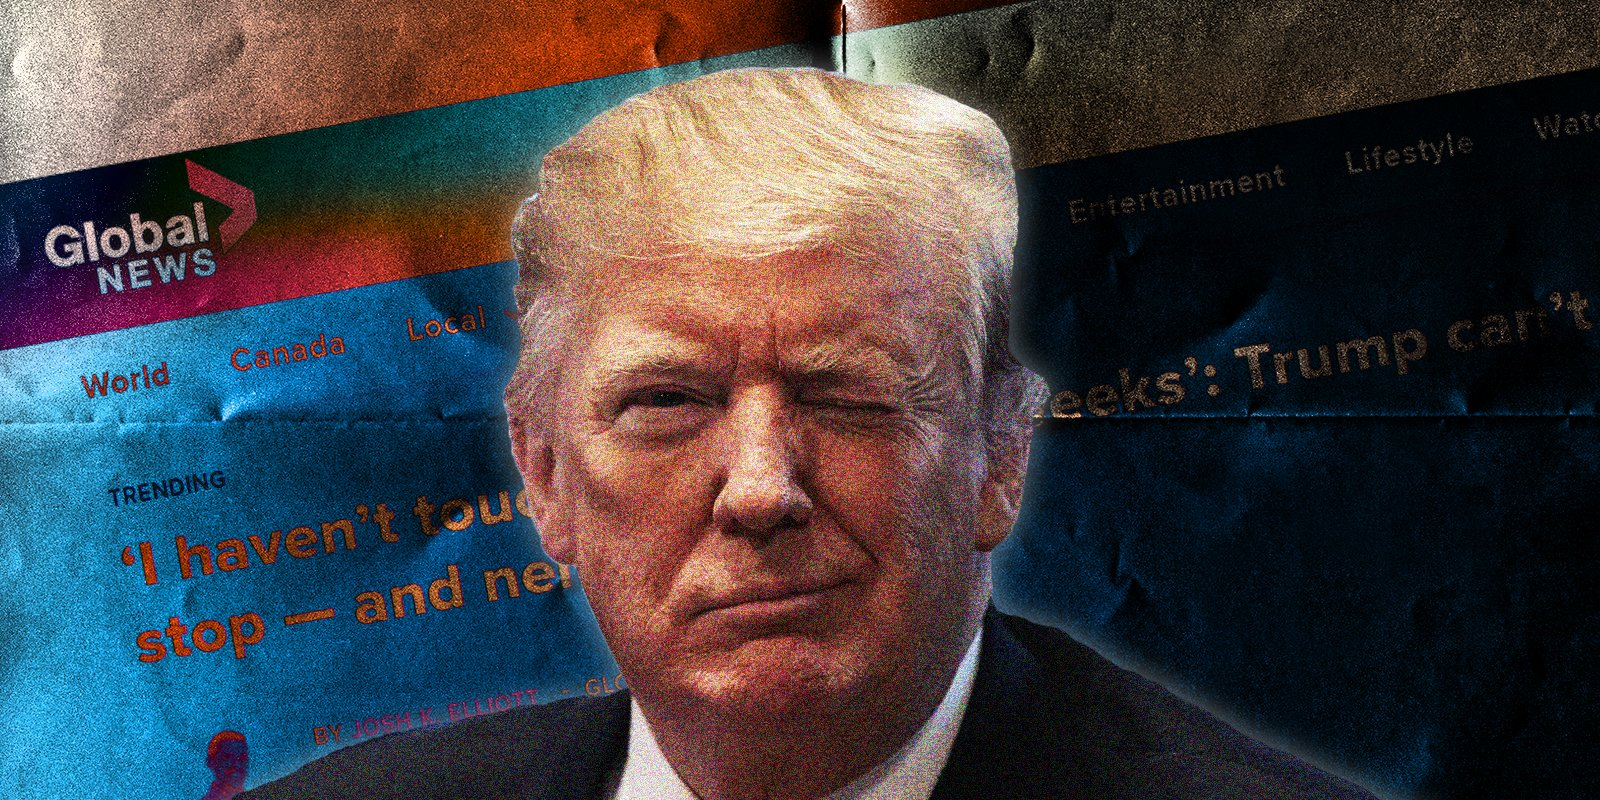 FAKE NEWS: Global spreads disinformation while trying to 'fact check' Trump